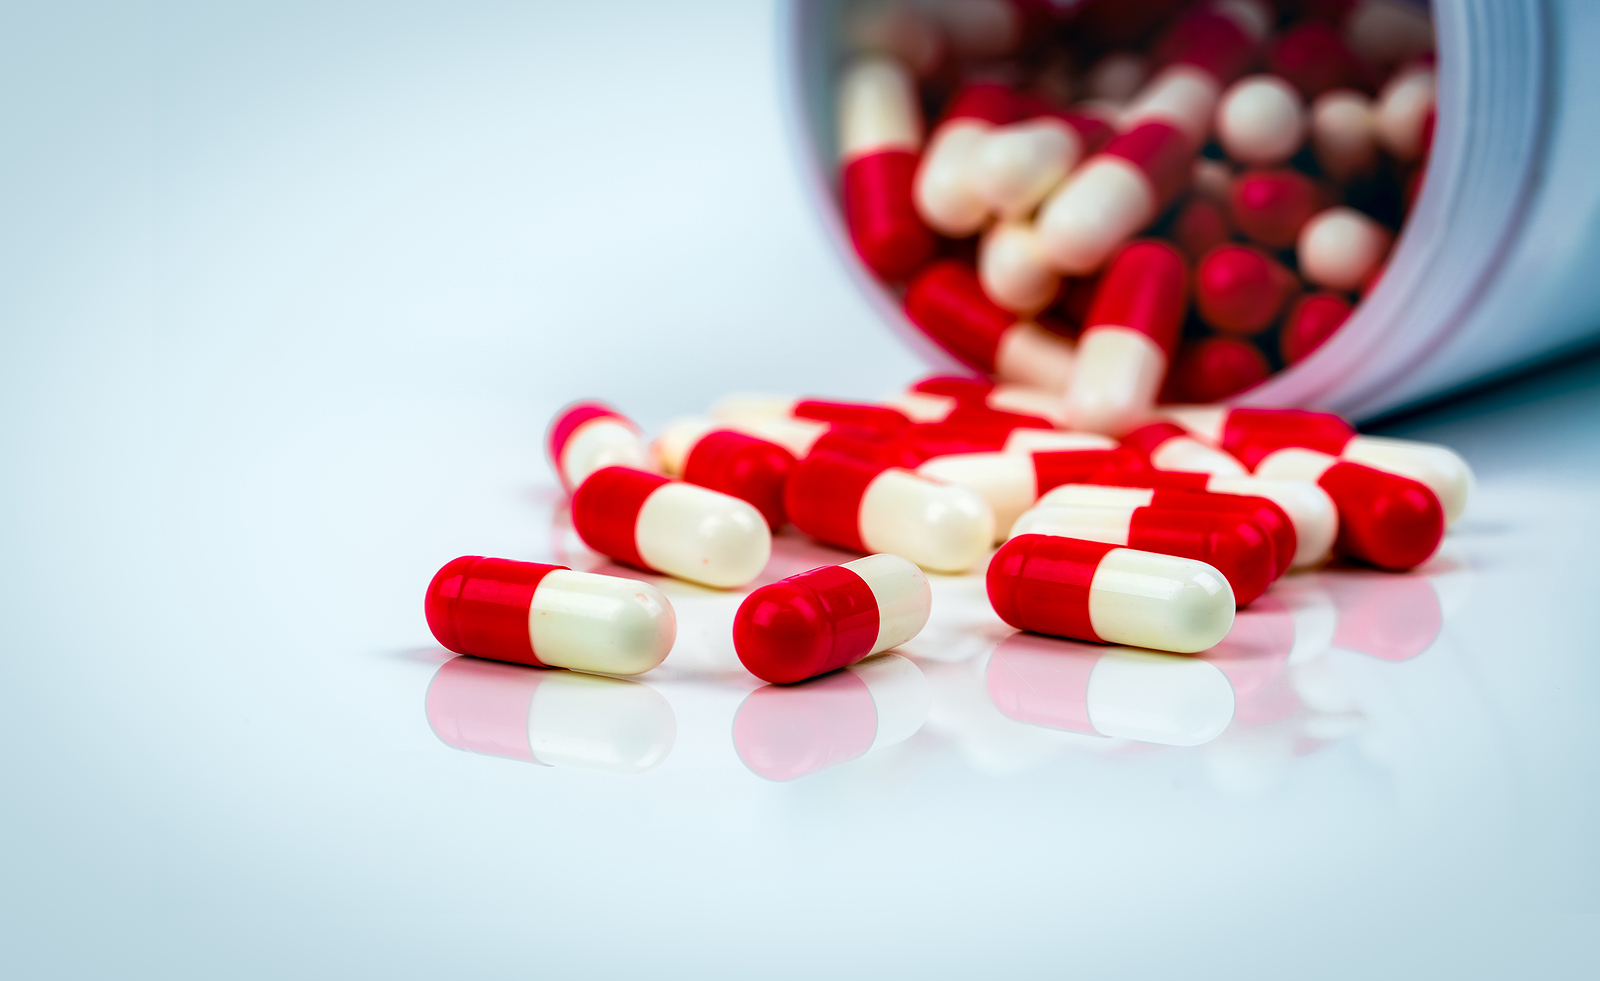 Red-white capsule pills on white table